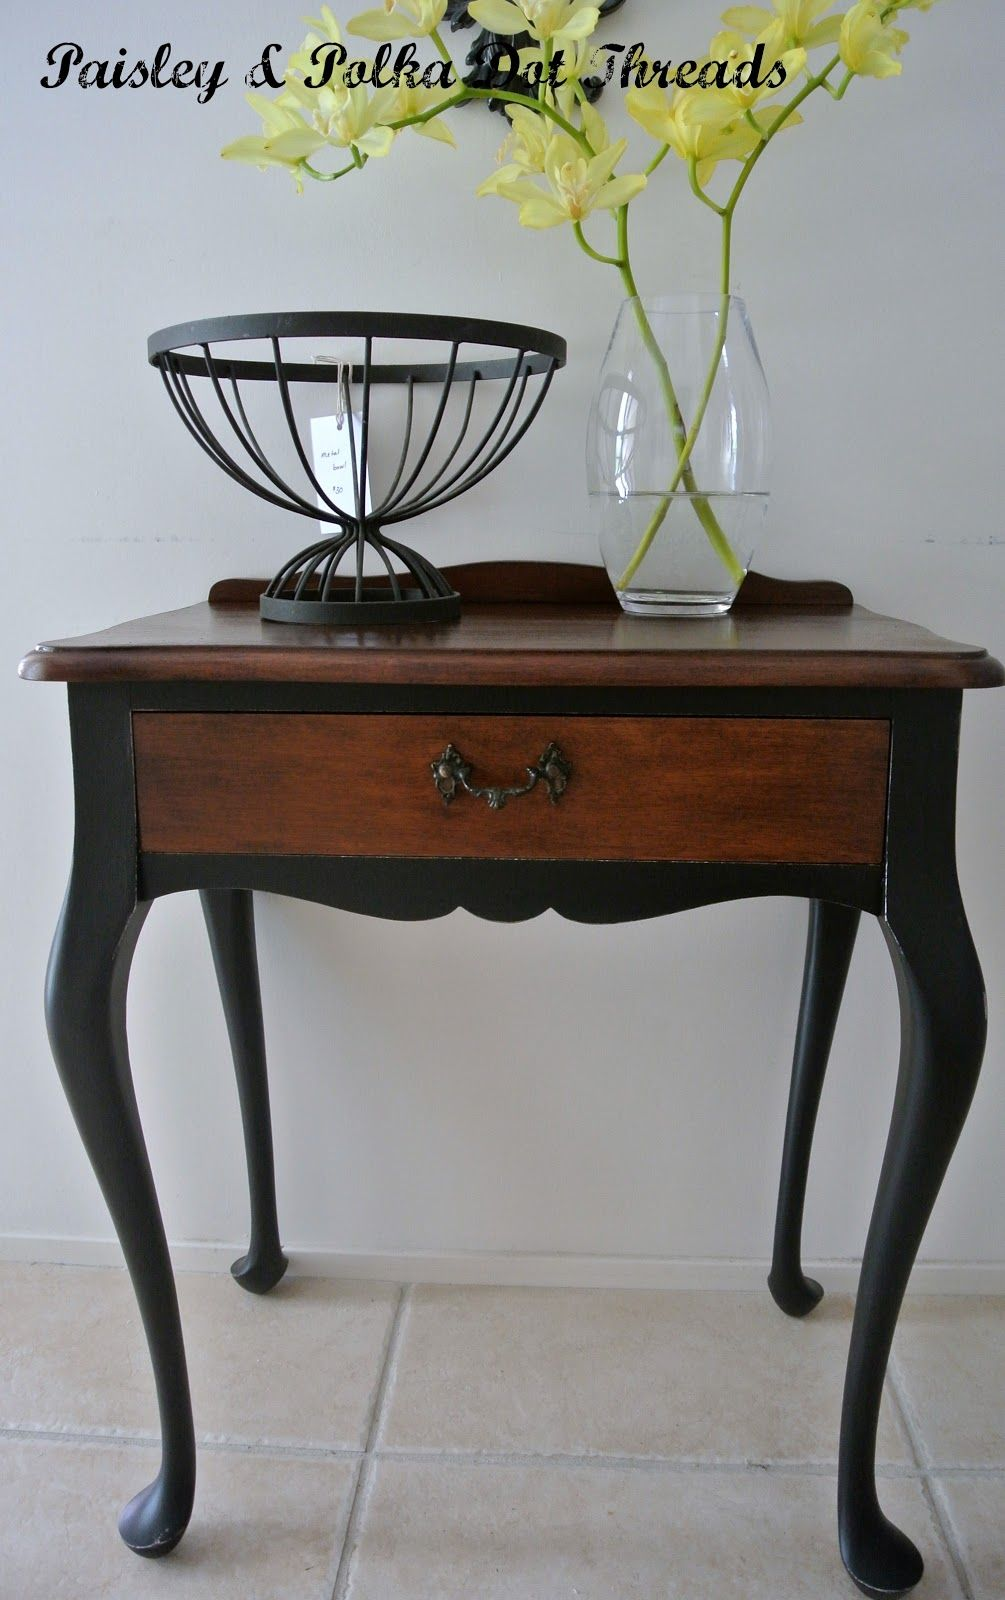 Queen Anne Table   Legs Painted Black. Going To Do This On My Living Room  Tables.